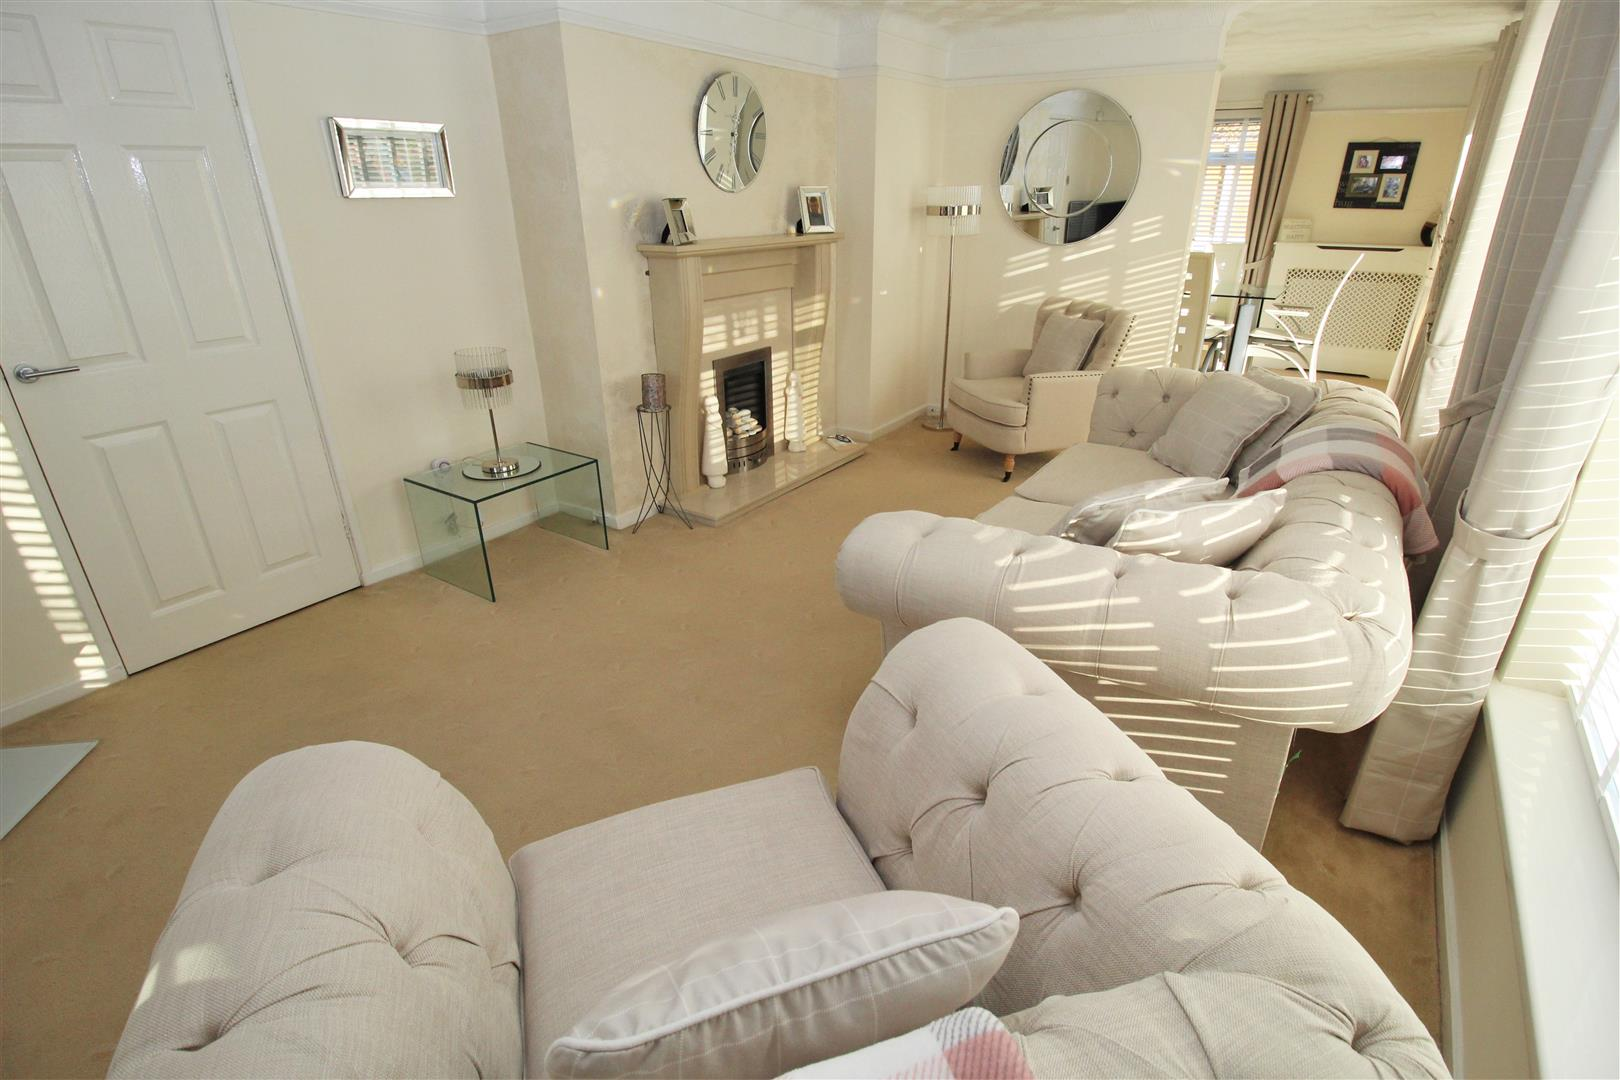 4 Bedrooms, House - Detached, Park Lane, Maghull, Liverpool